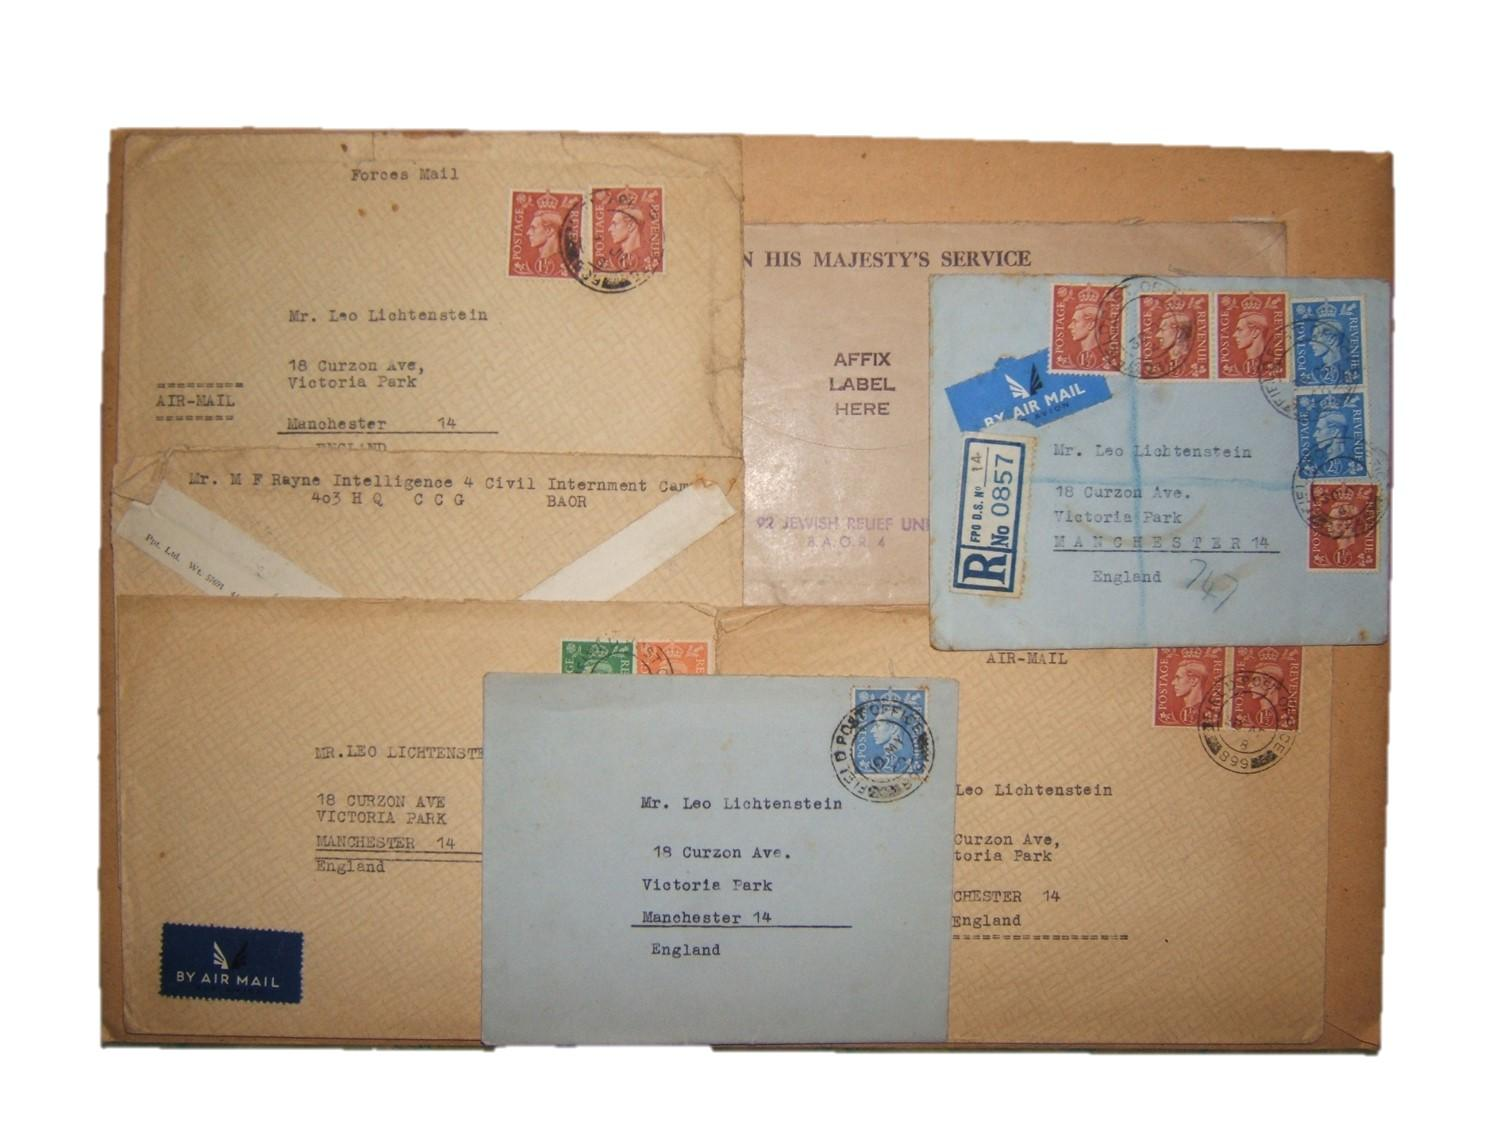 BAOR-Jewish mail: lot x7 British military cvs (6 airmail) ex intelligence officer of BAOR Ruhr region Control Commission for Germany to Jewish civilian (producer of hand painted an